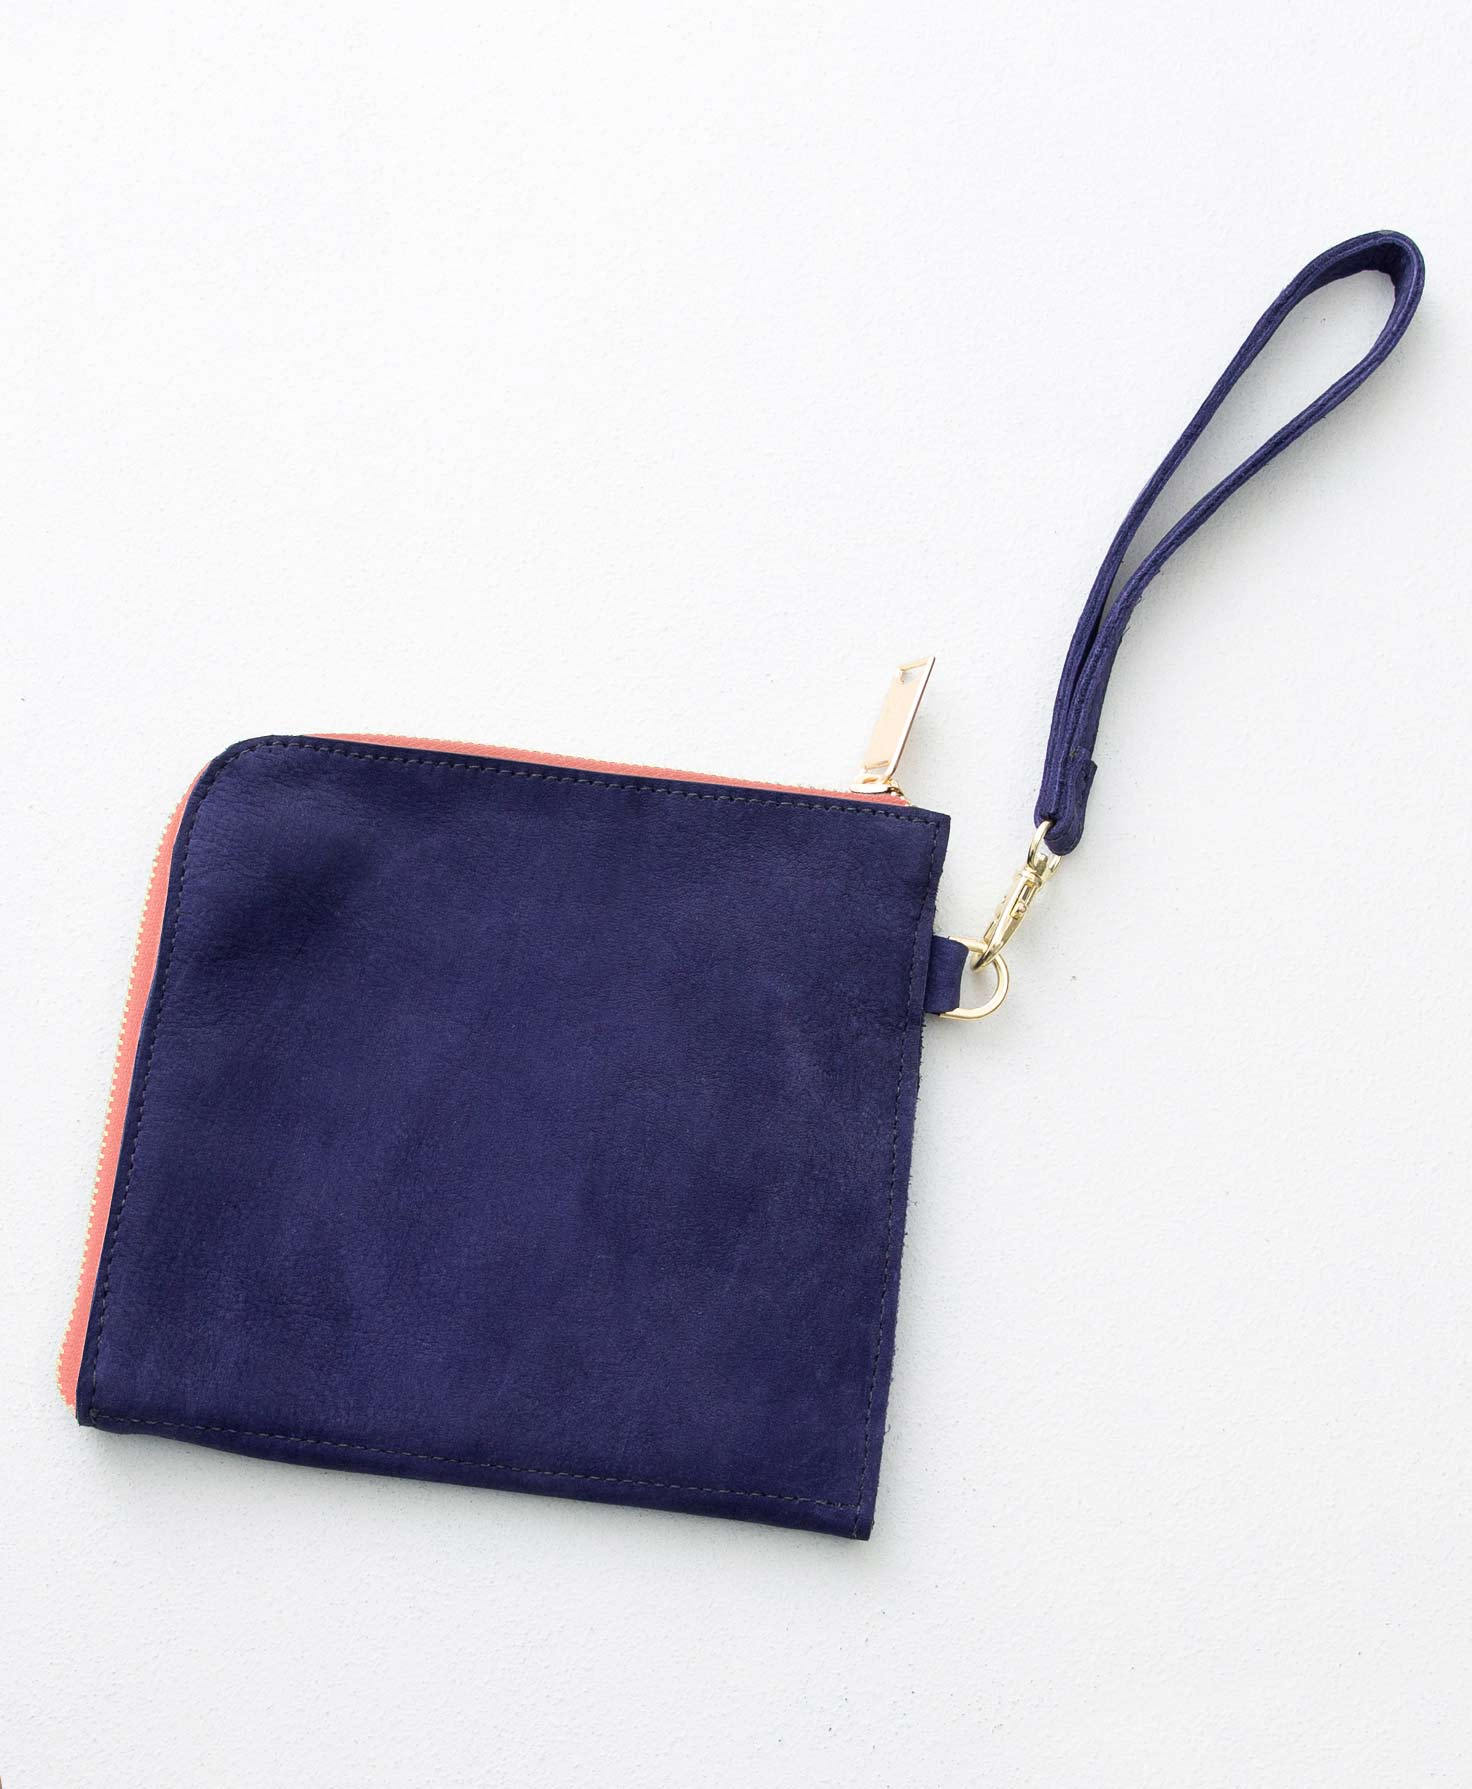 The Amazement Pouch lays on a white background. It is a square pouch with a golden zipper wrapping around one side and the top of the bag. It is made of soft navy leather. On the side of the bag is a small gold ring. A removable leather wrist strap in a matching navy shade is attached to the ring via a gold clip.